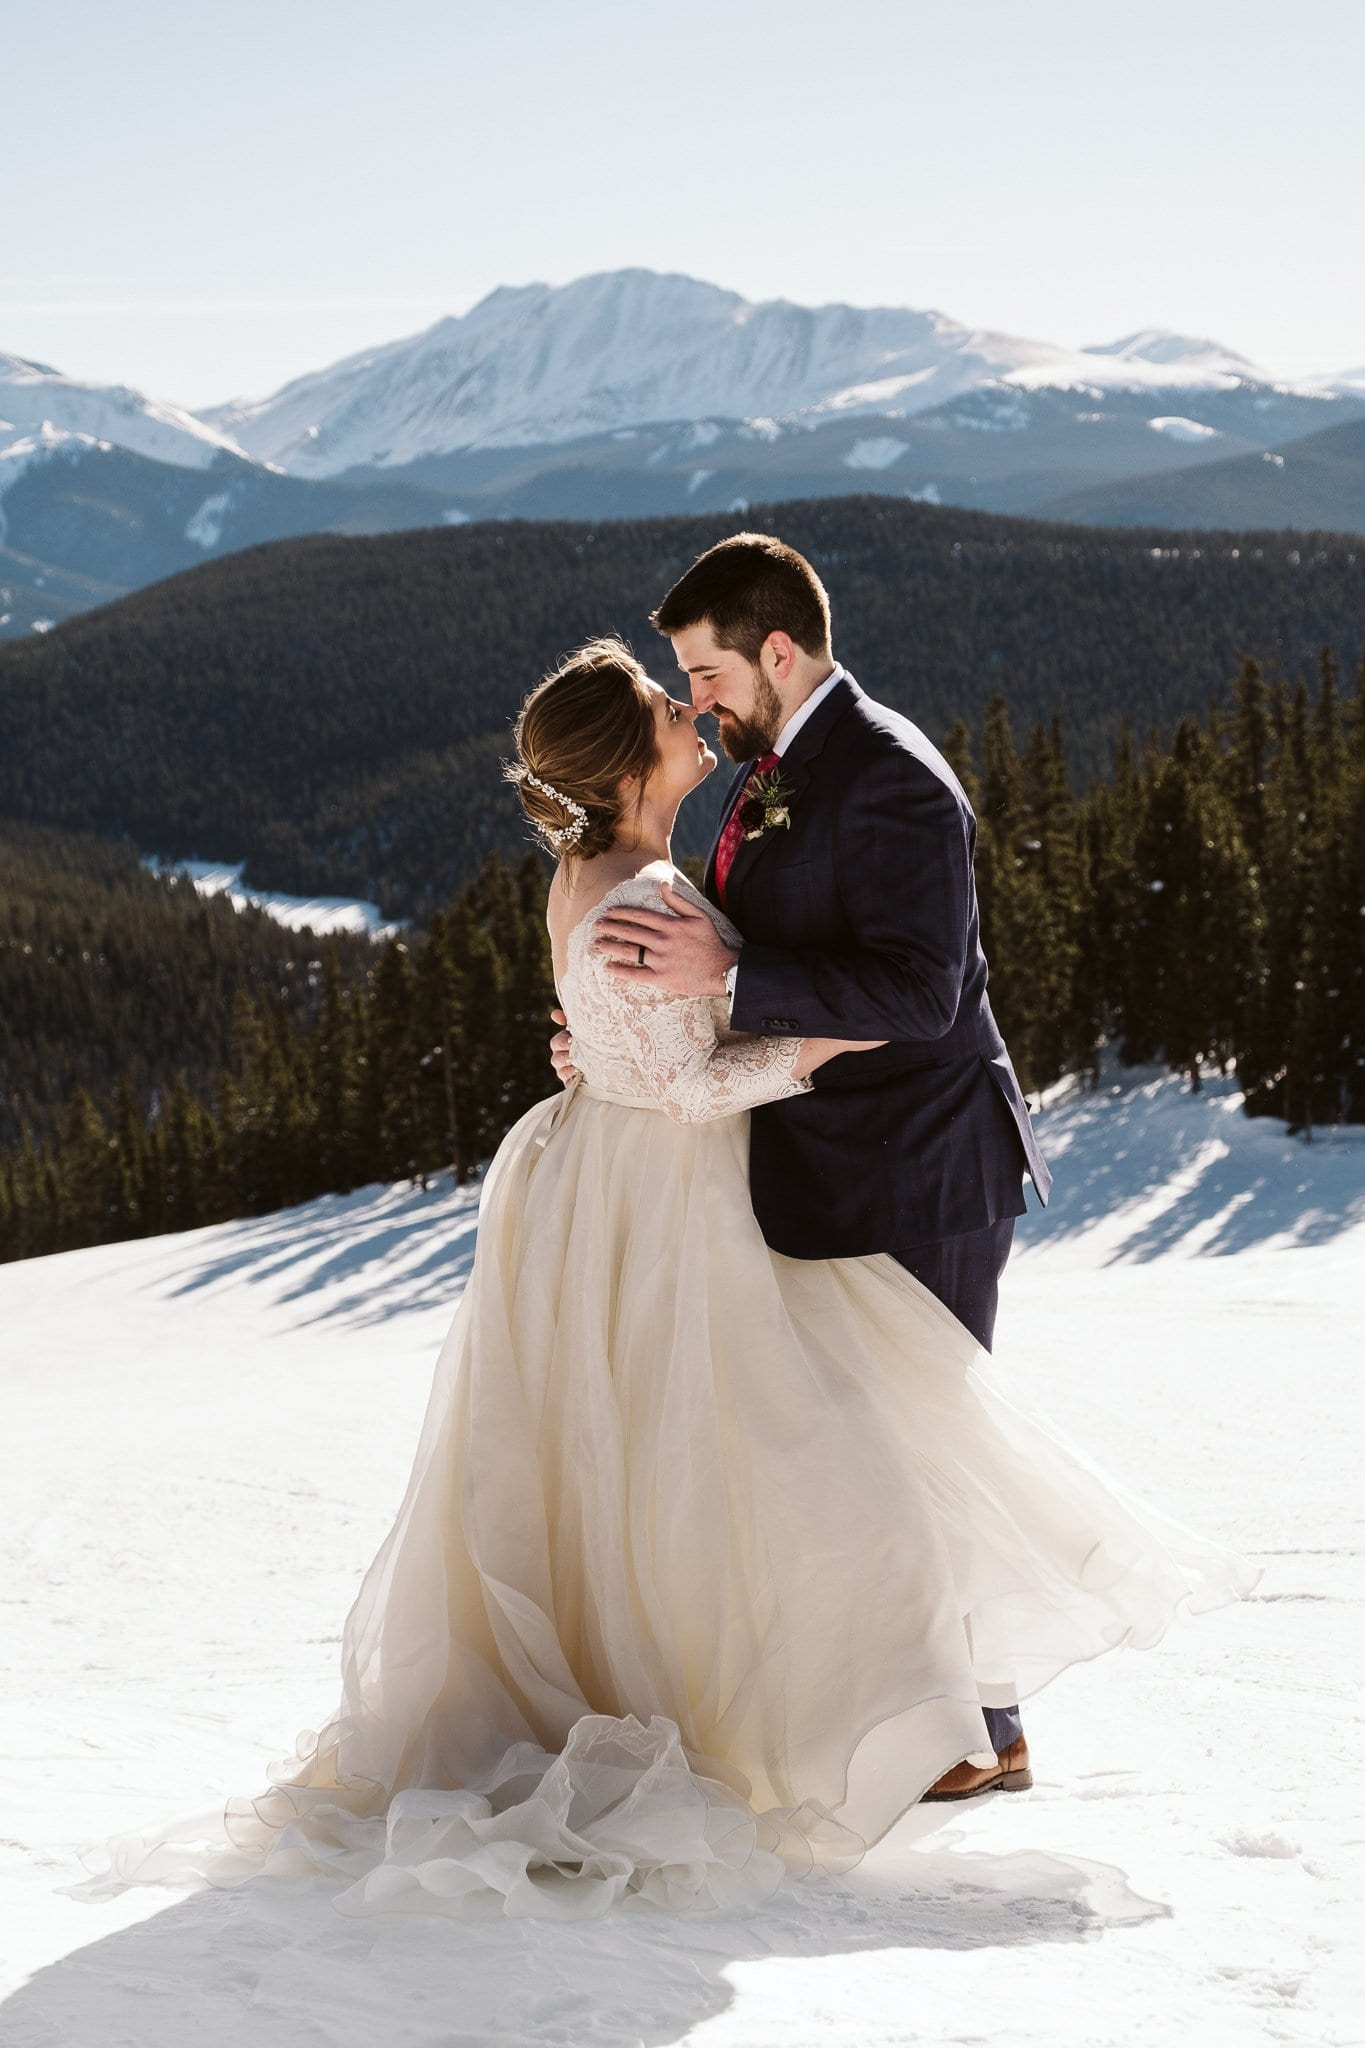 Winter elopement on the slopes of Keystone Ski Resort in Colorado.